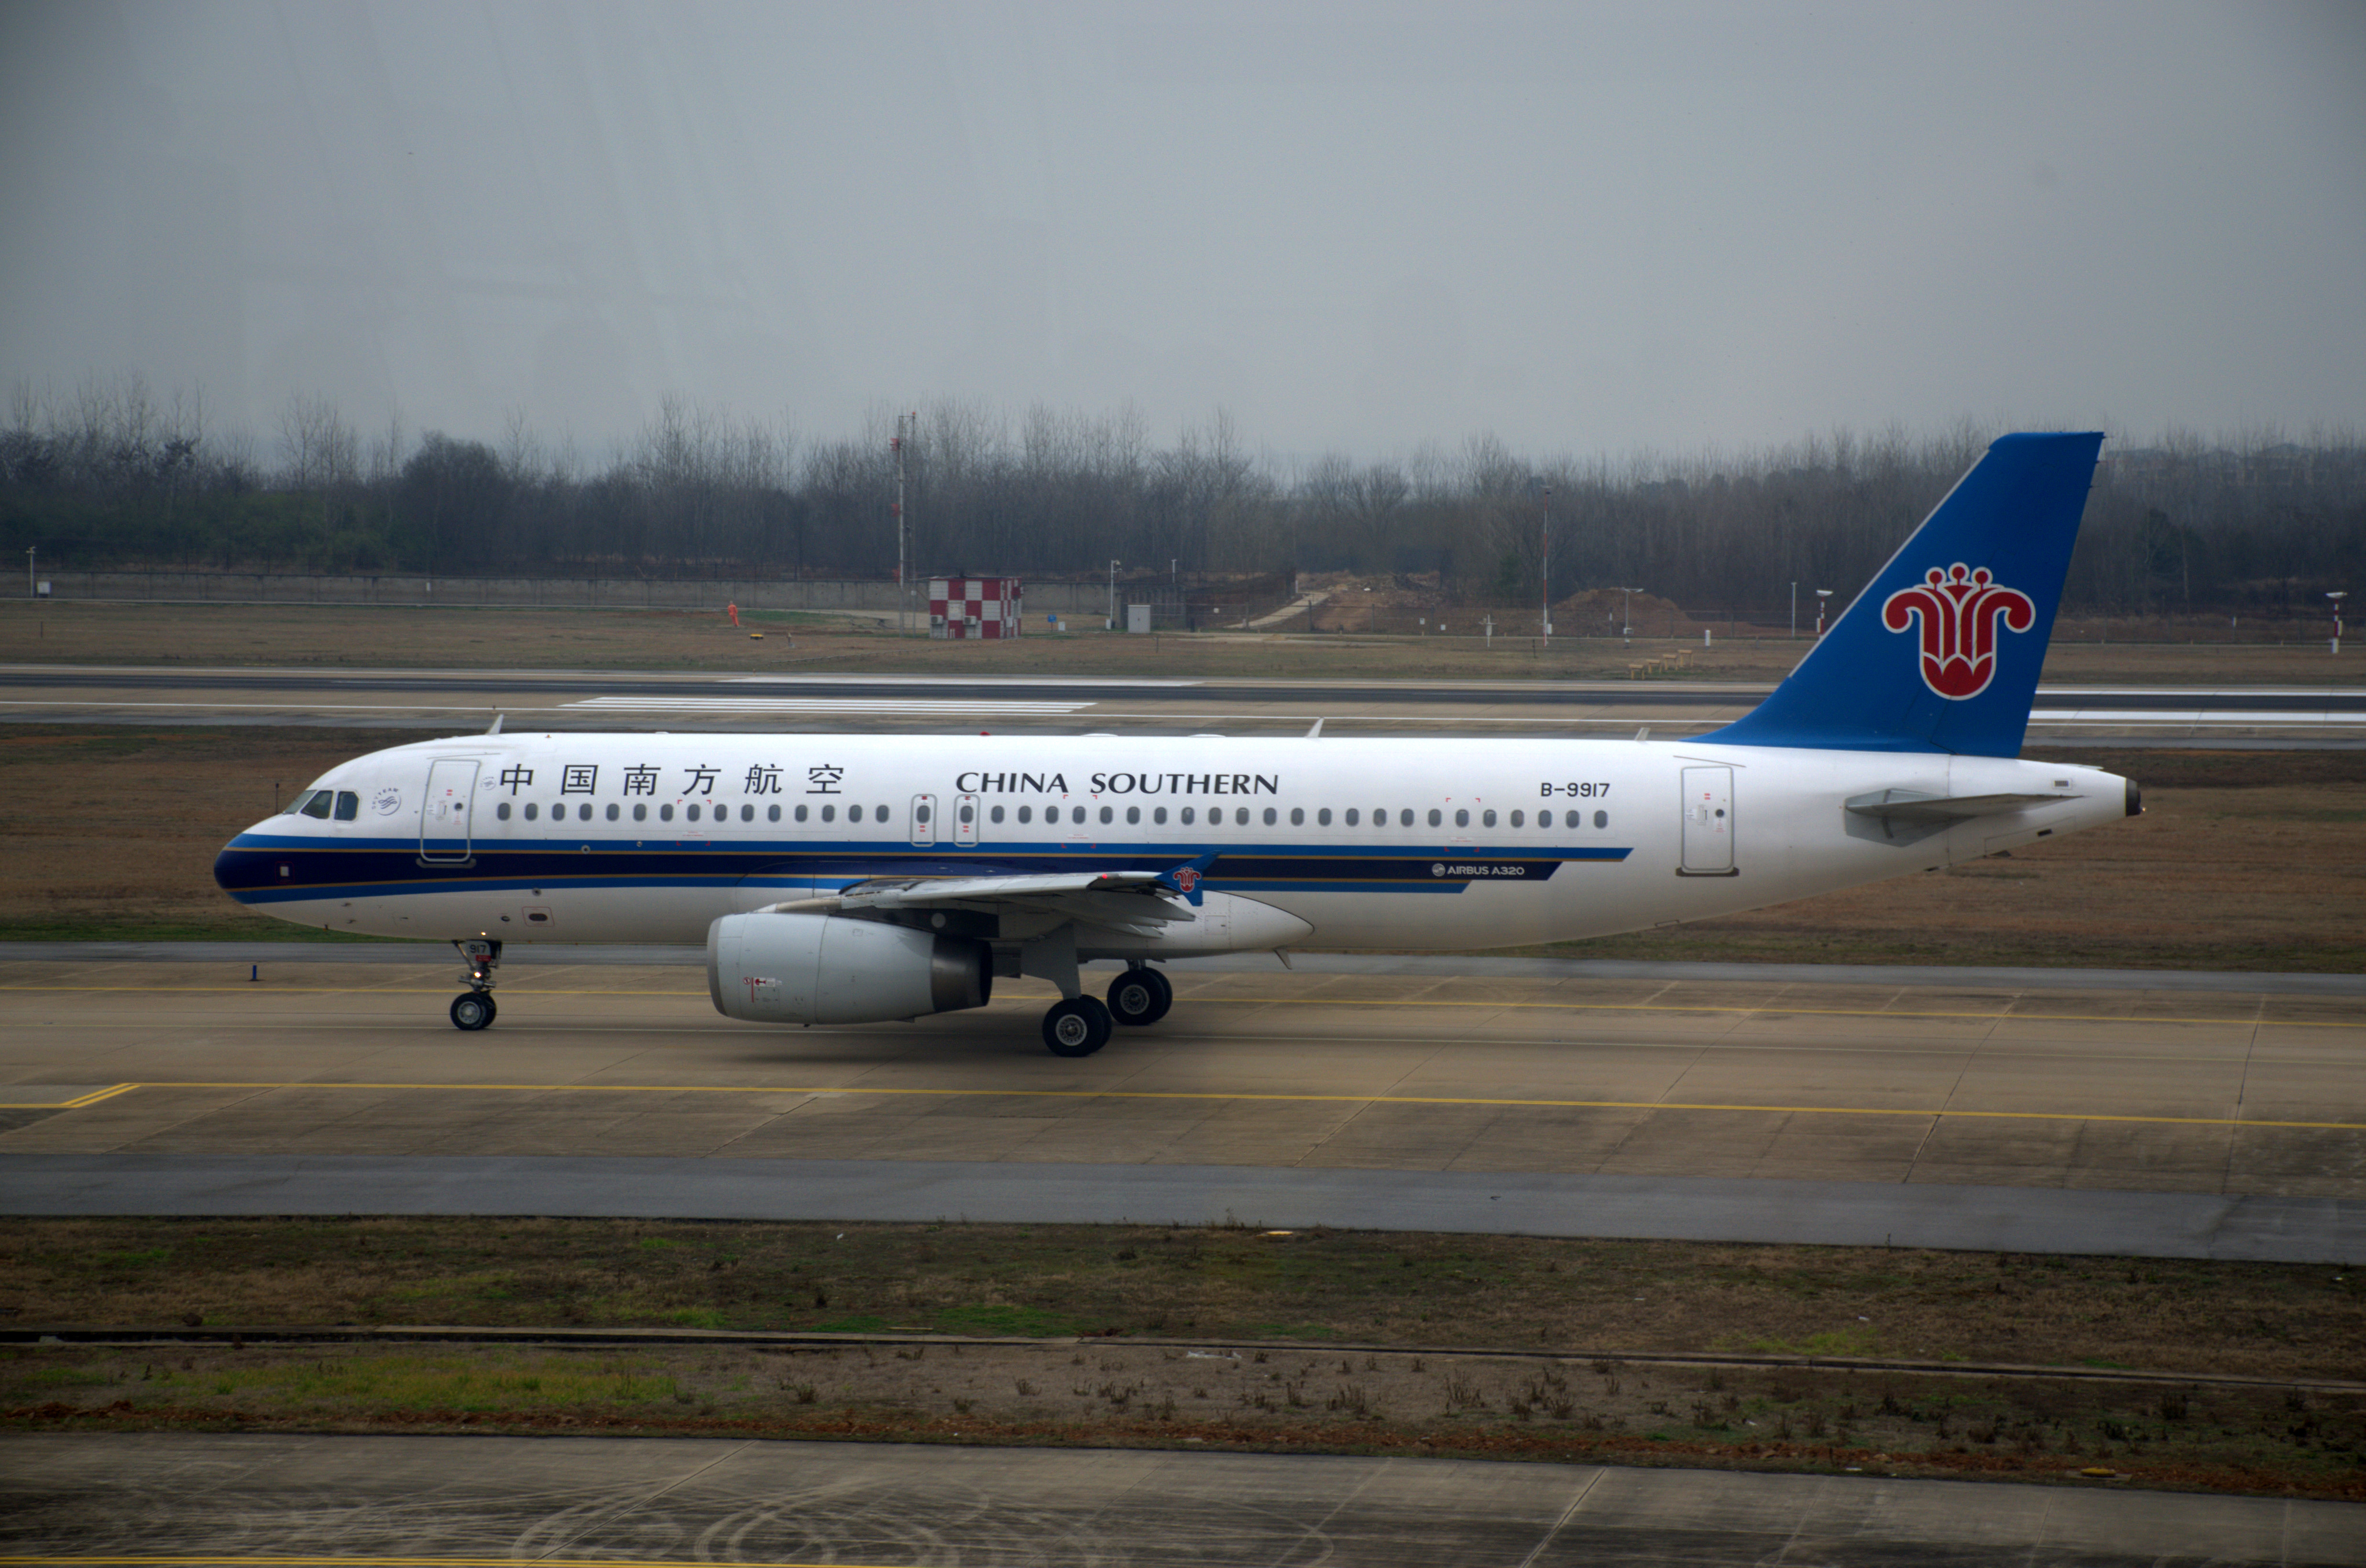 Airbus A320 of China Southern Airlines at the airport in Wuhan (China)